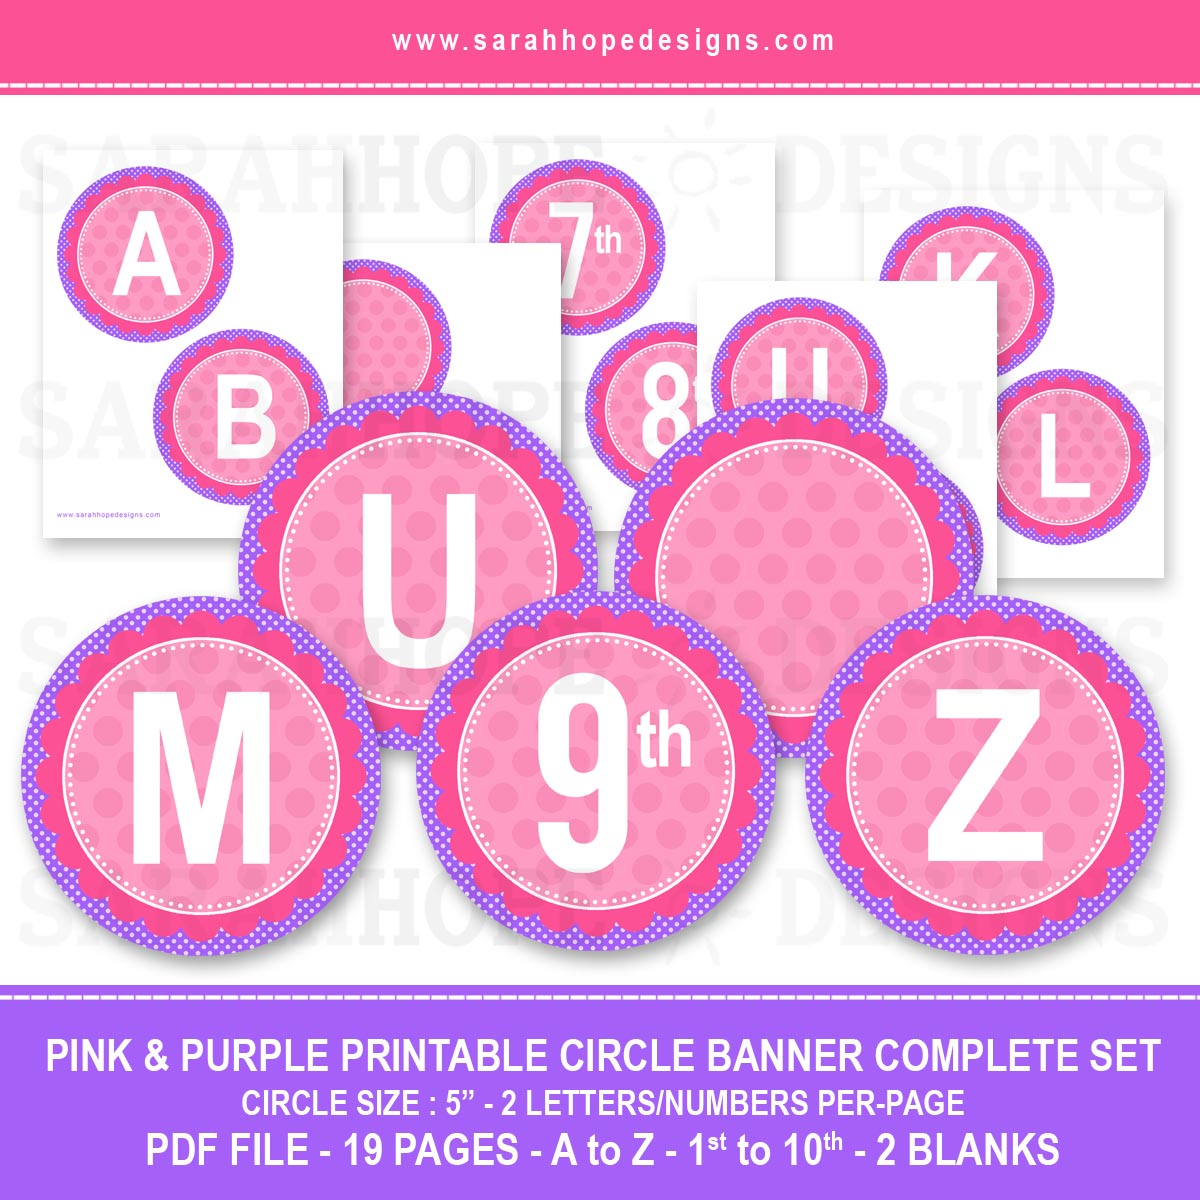 graphic regarding Free Printable Letters for Banners identified as Spell Out A thing With these kinds of Cost-free Alphabet Circle Banners